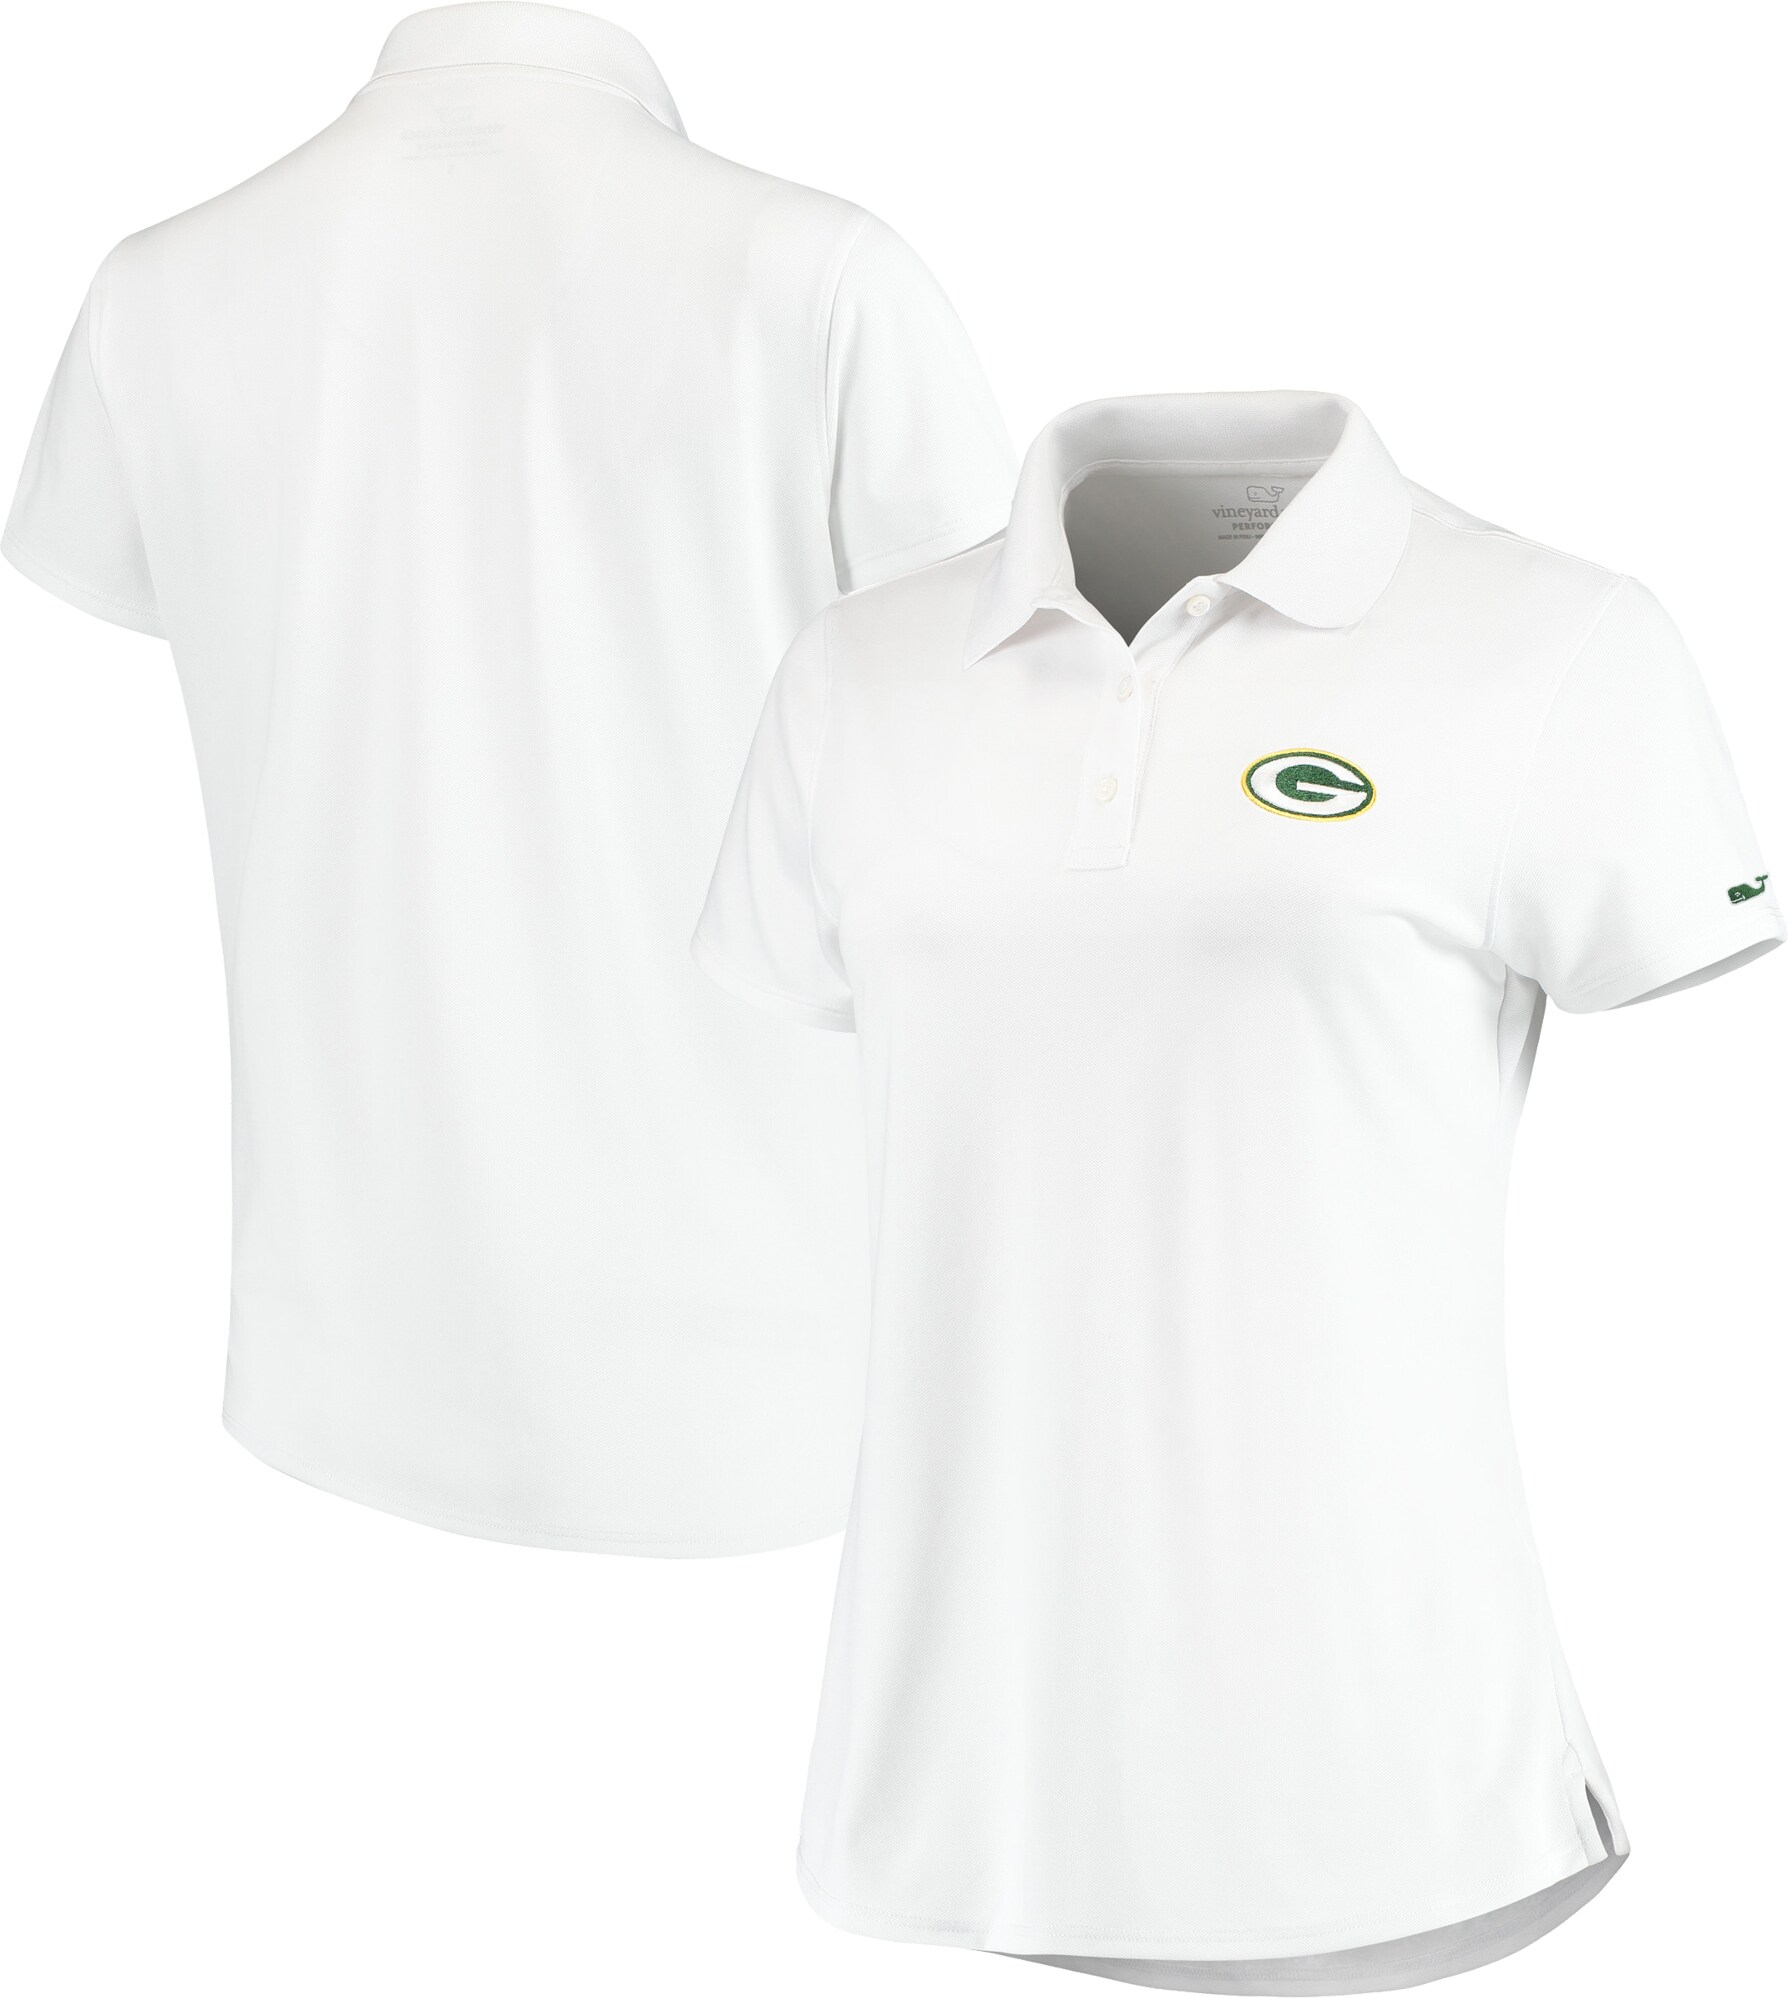 Green Bay Packers Vineyard Vines Women's Pique Sport Performance Polo - White